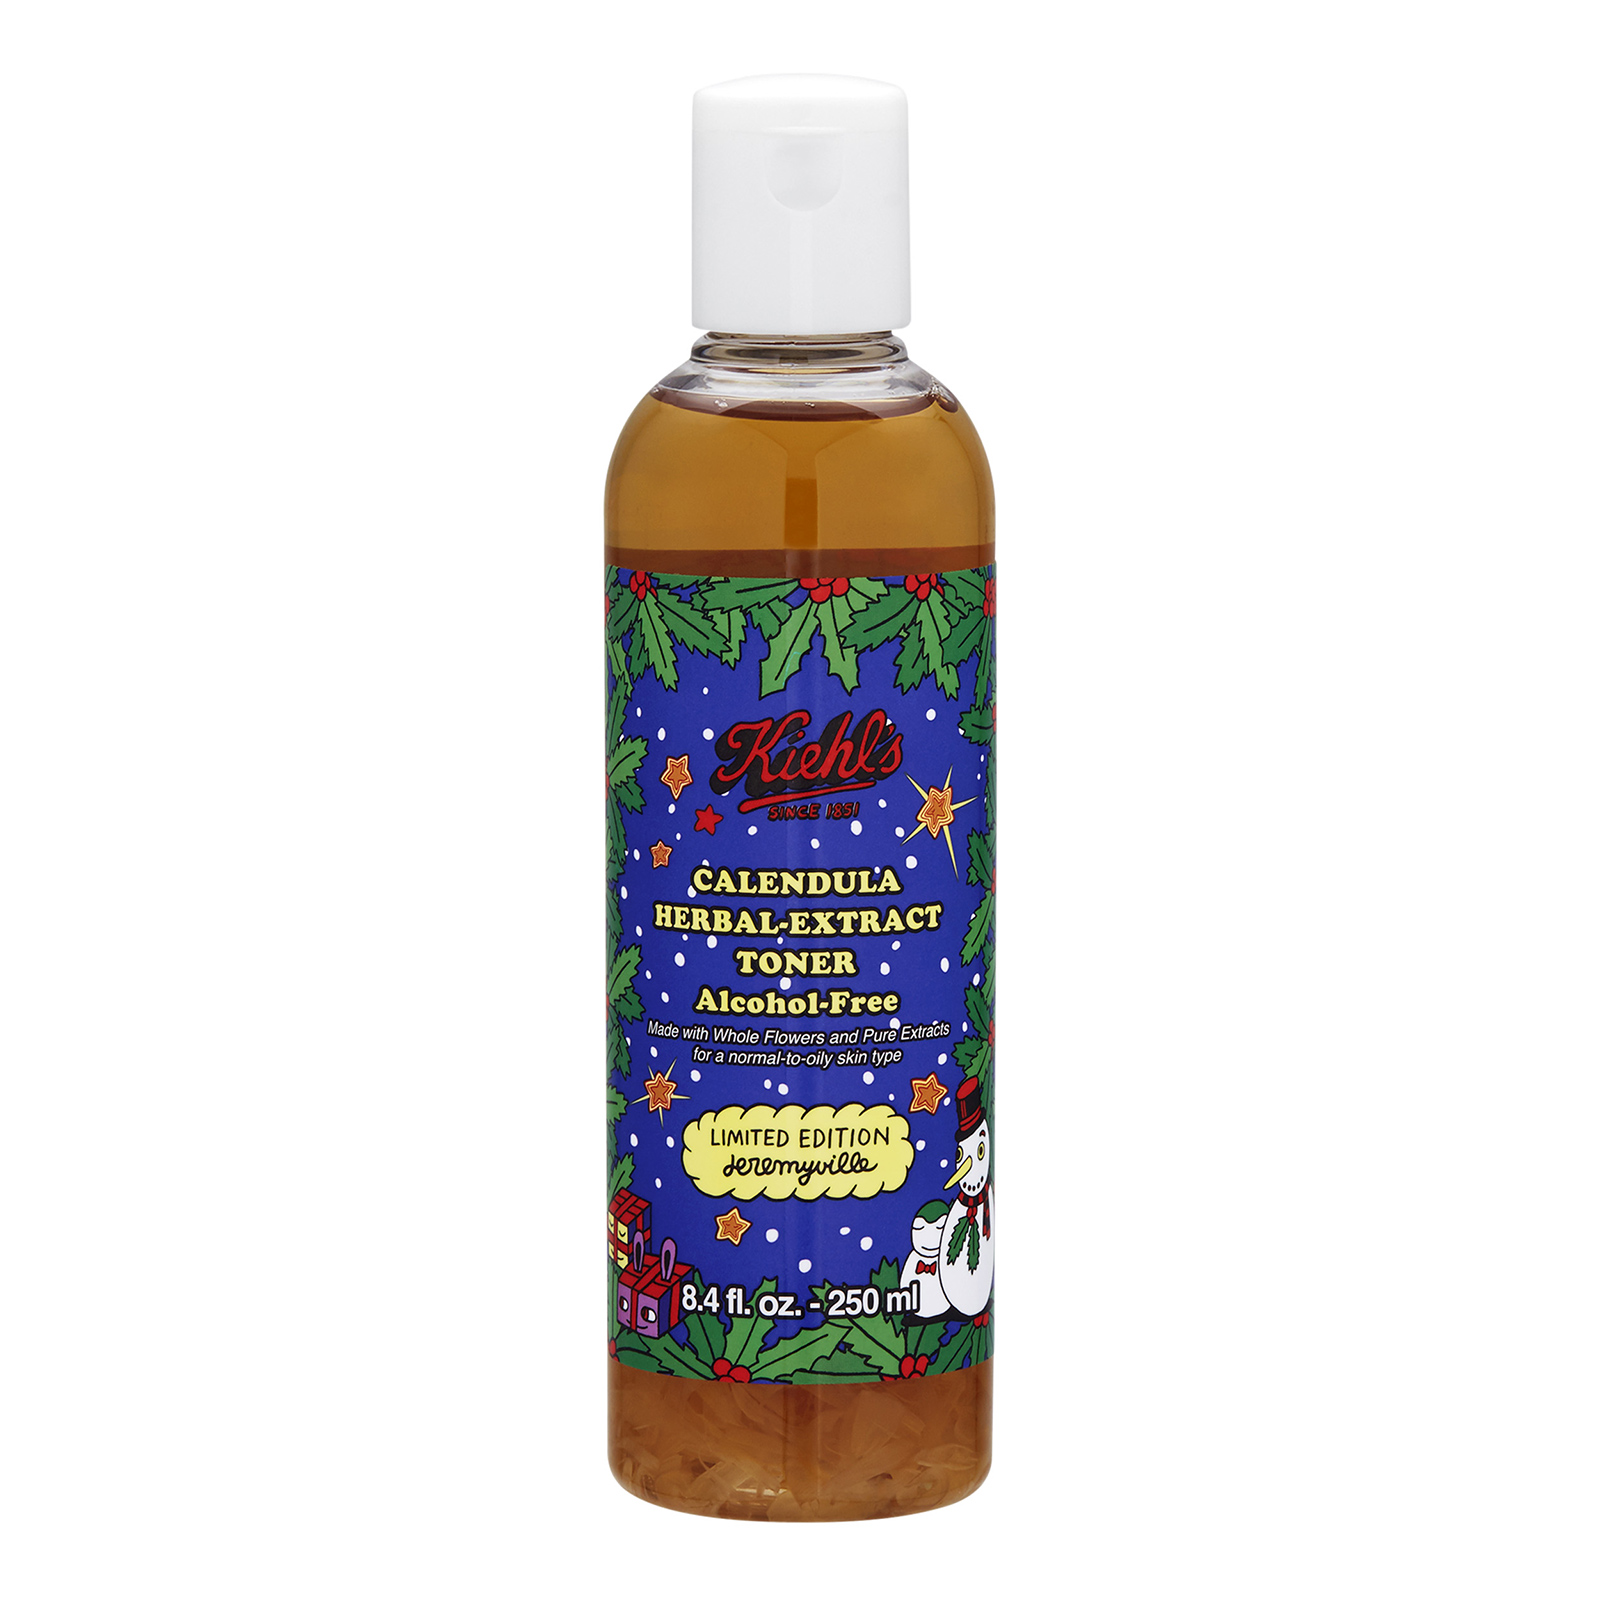 Calendula Herbal-Extract Alcohol-Free Toner 8.4oz